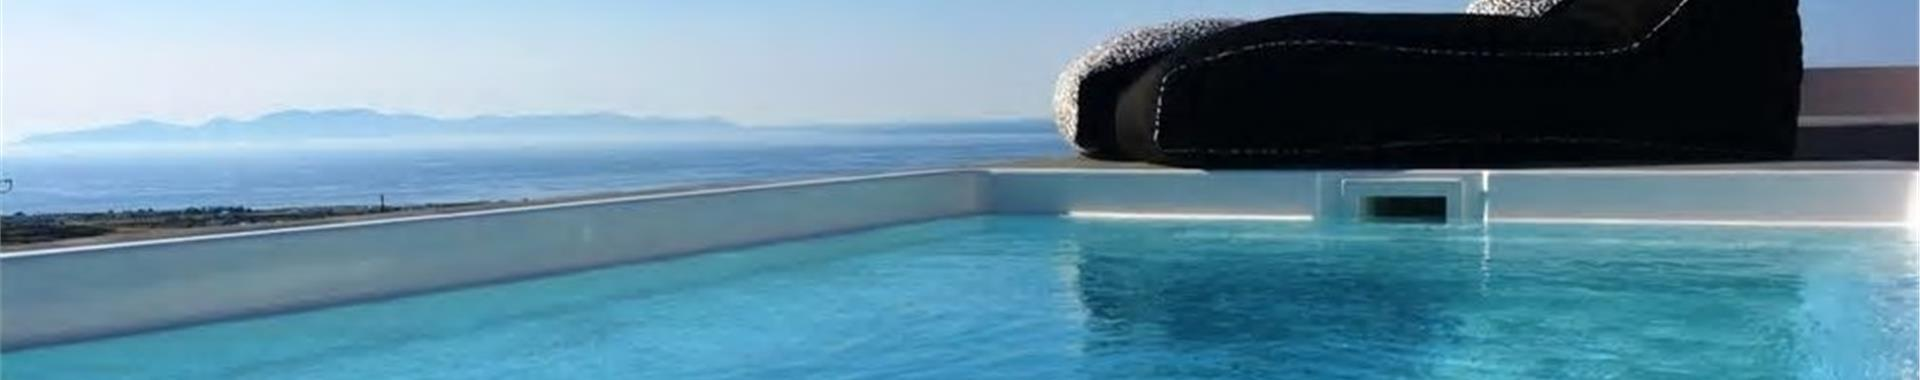 Finikia Finikia Hotels in Santorini island, Greece